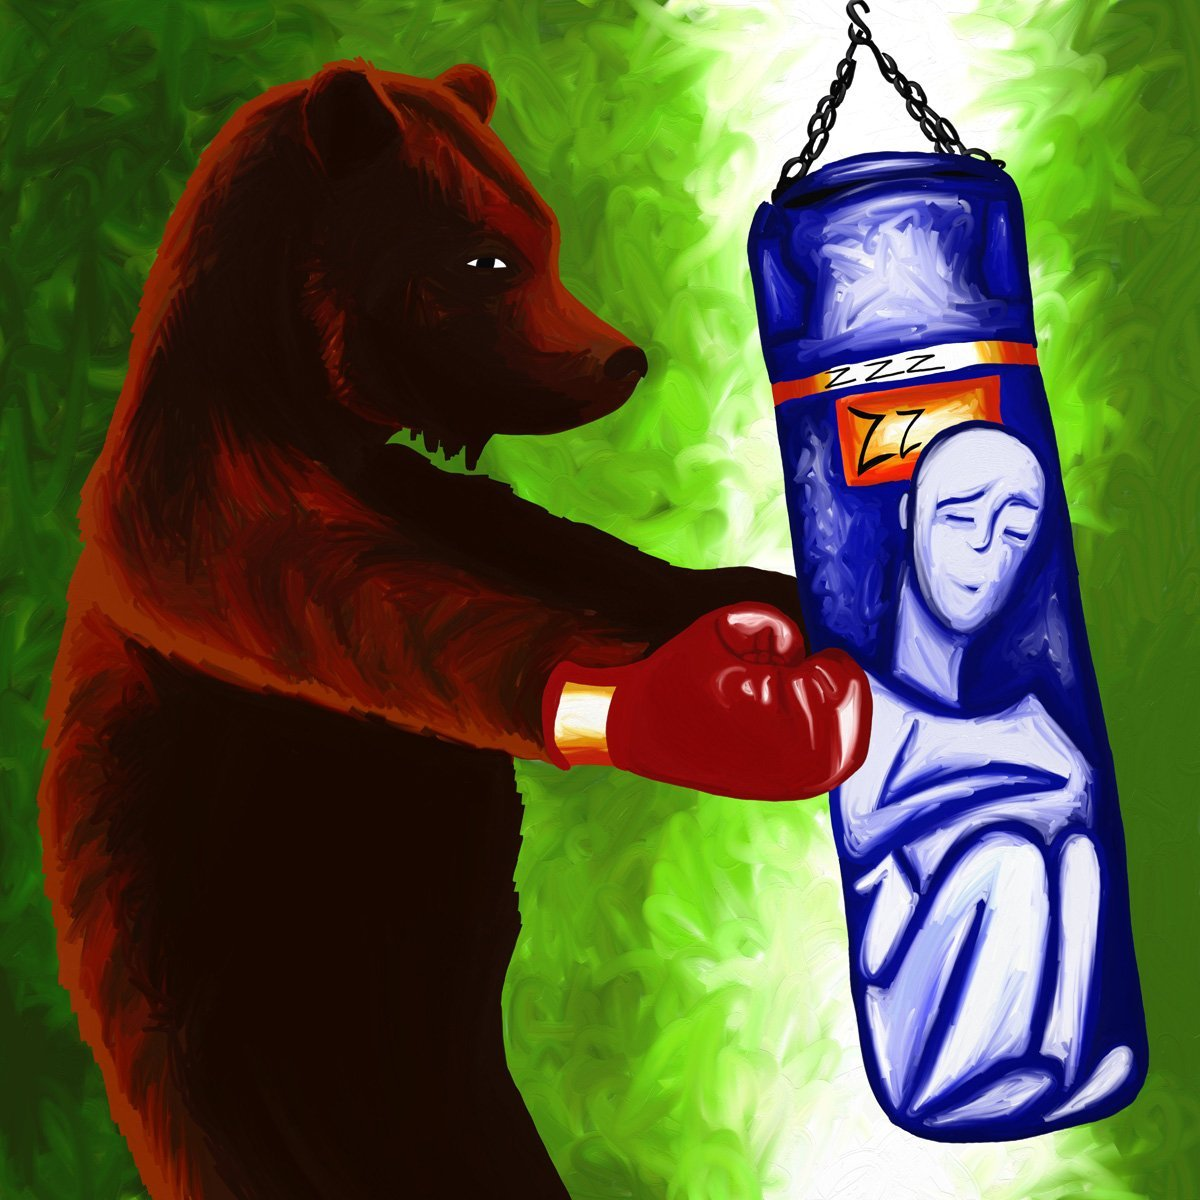 The image shows a piece of artwork by Jina Wallwork. It is a drawing of a person in a punch bag and a bear in boxing gloves. Stylistically this piece of artwork has links with expressionism and surrealism.